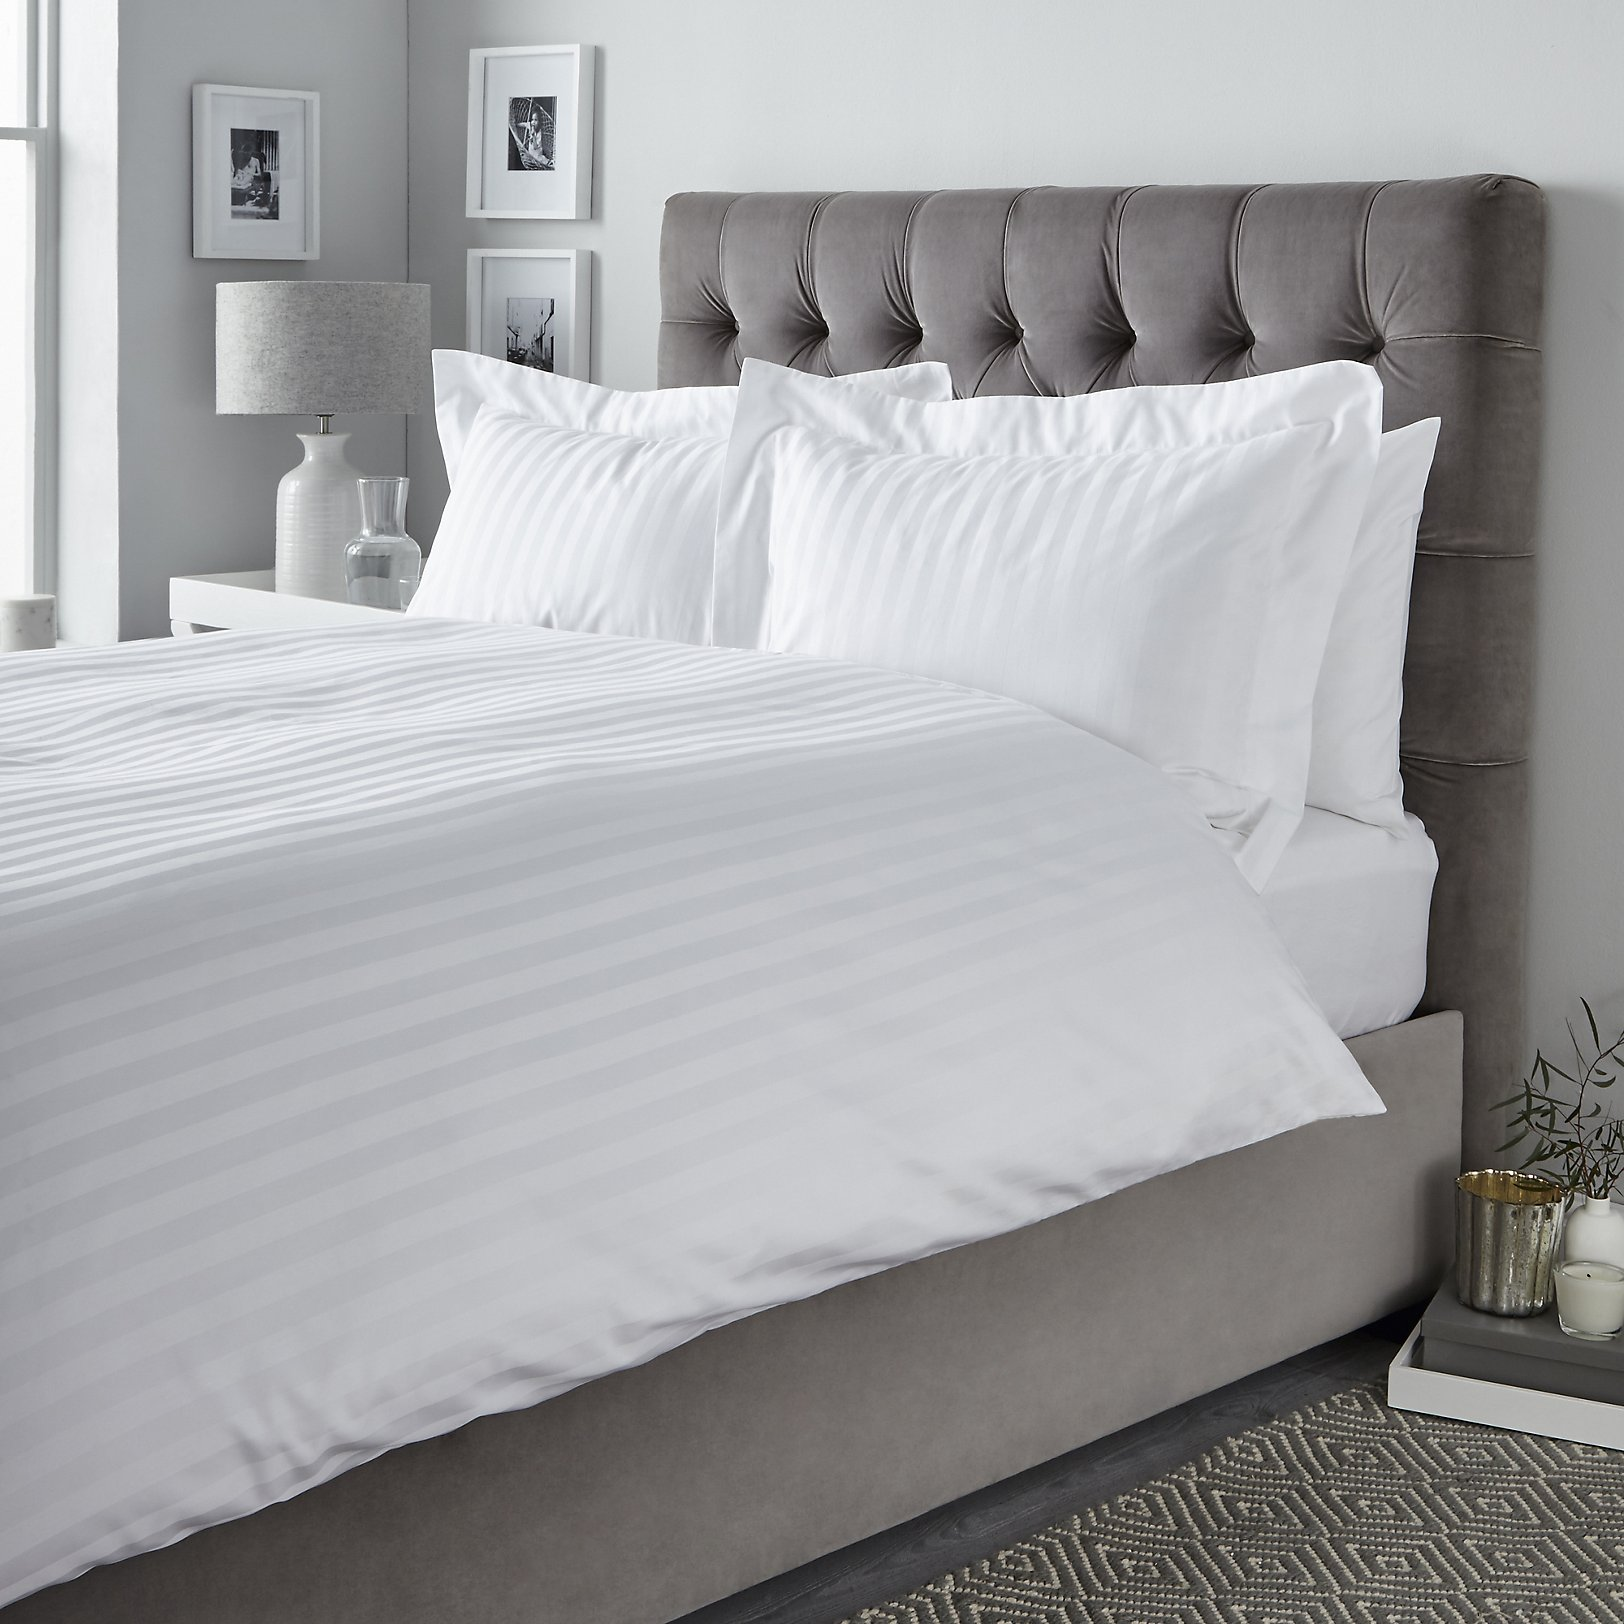 White and Grey Duvet Cover | White Ruched Duvet Cover | White Duvet Cover